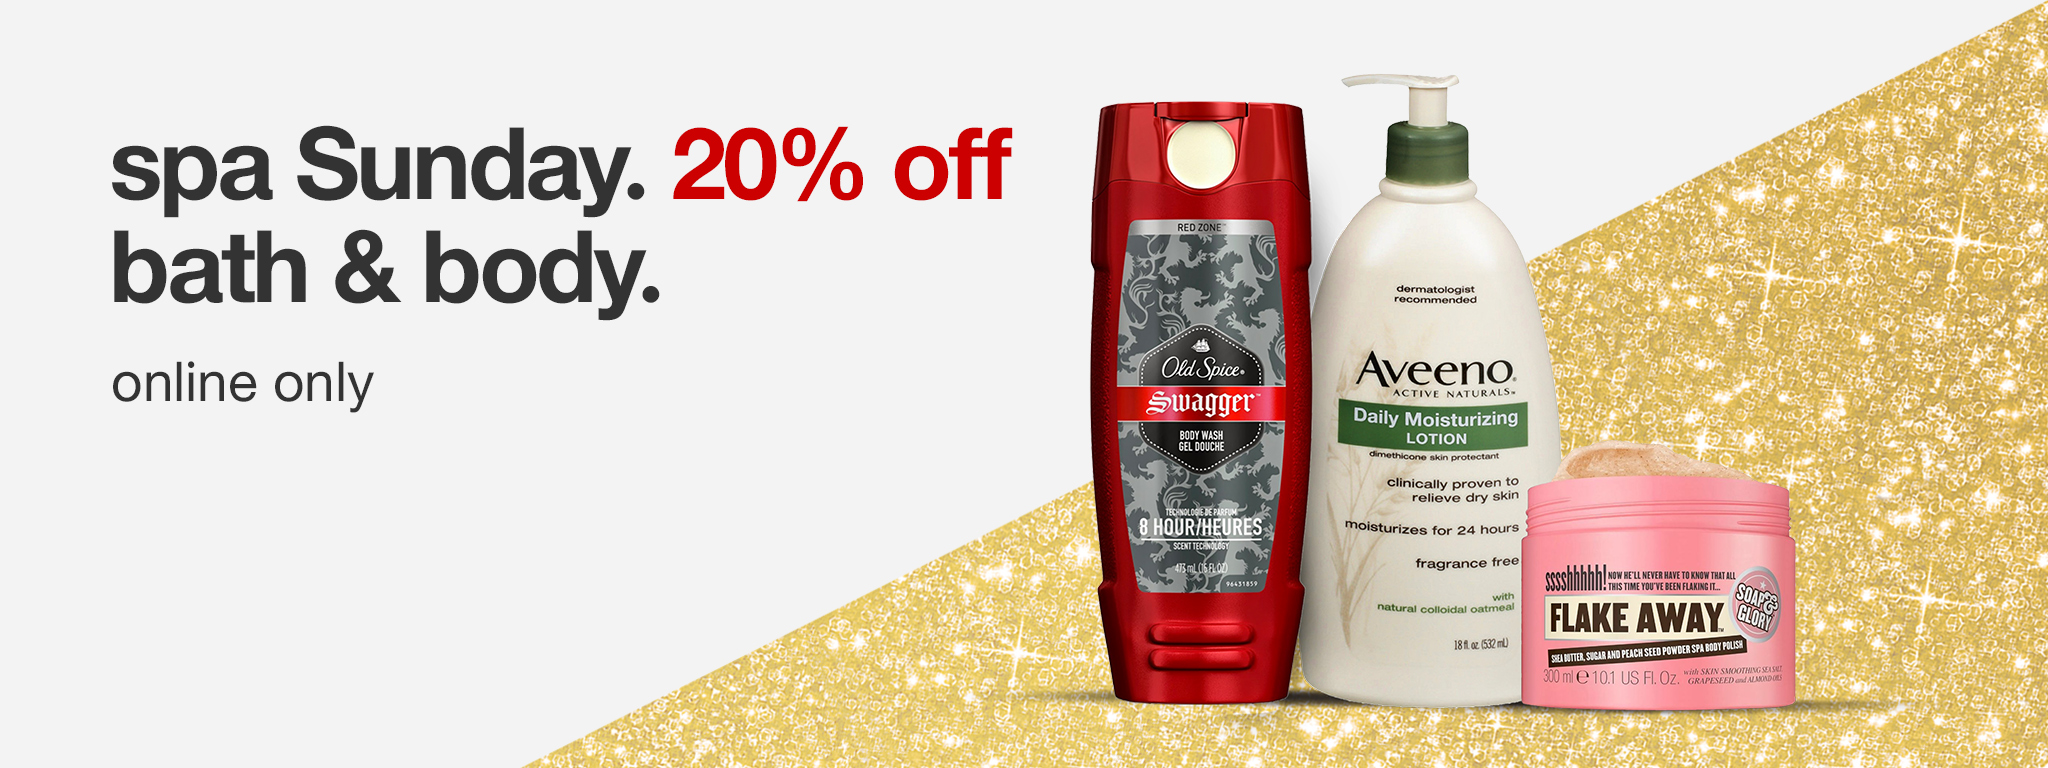 Old Spice. Aveeno. Flake away. spa Sunday. 20% off bath & body. only online.